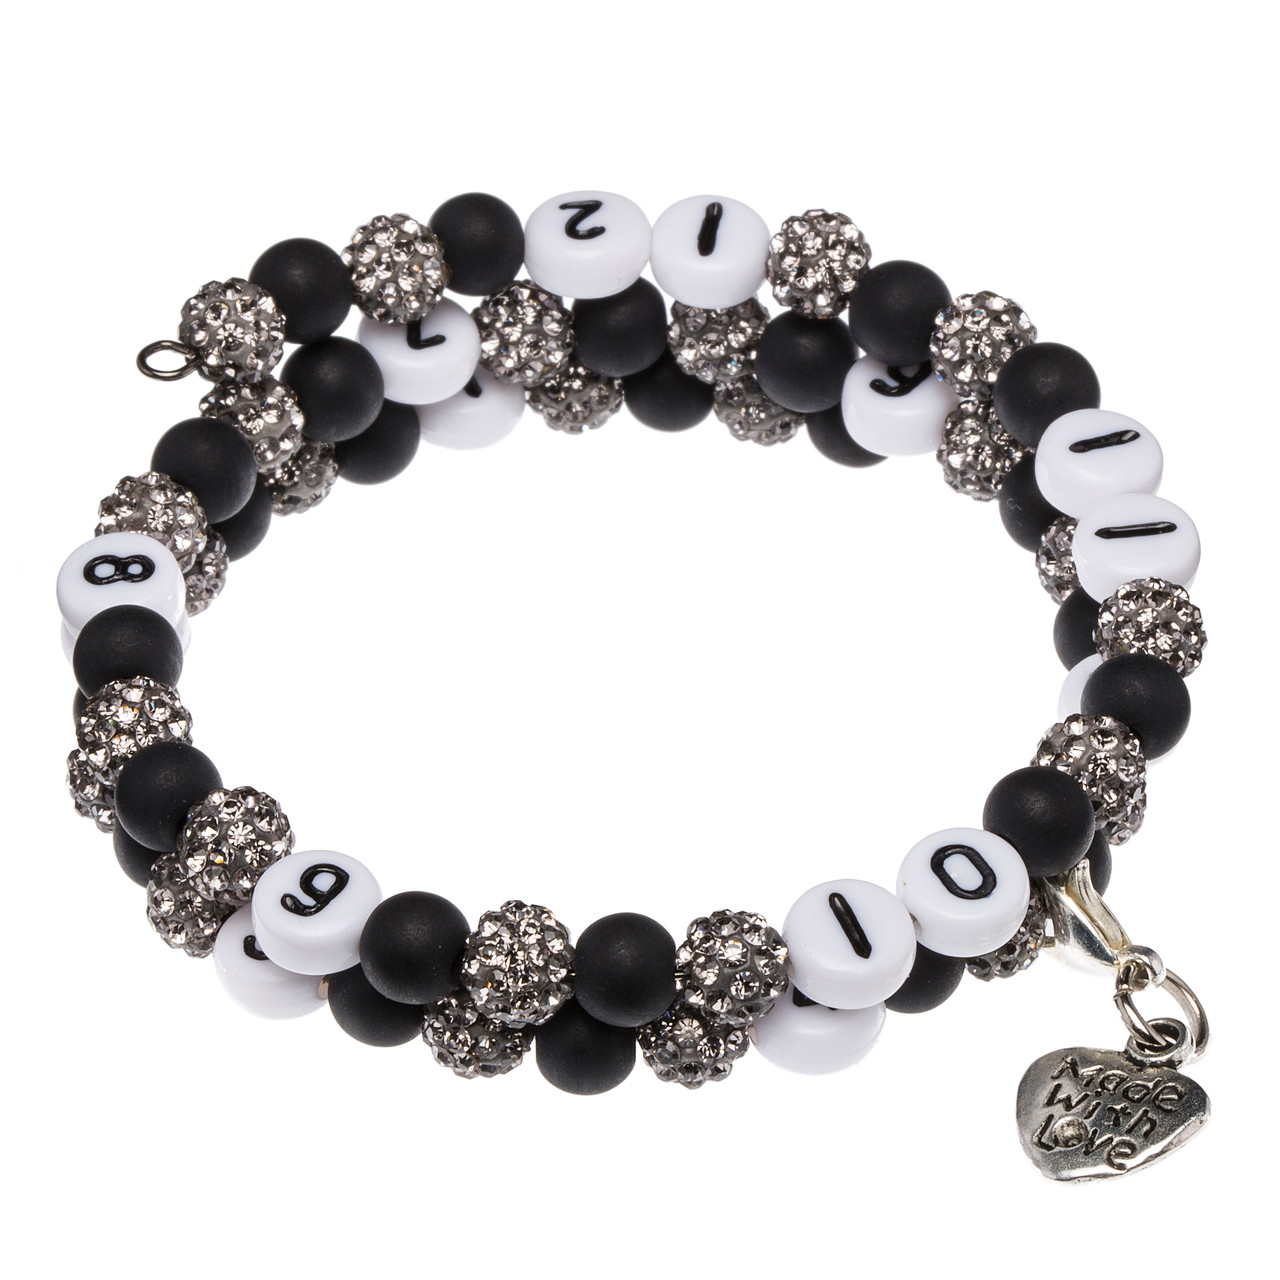 Stillarmband Black Strass-/Polarisperlen